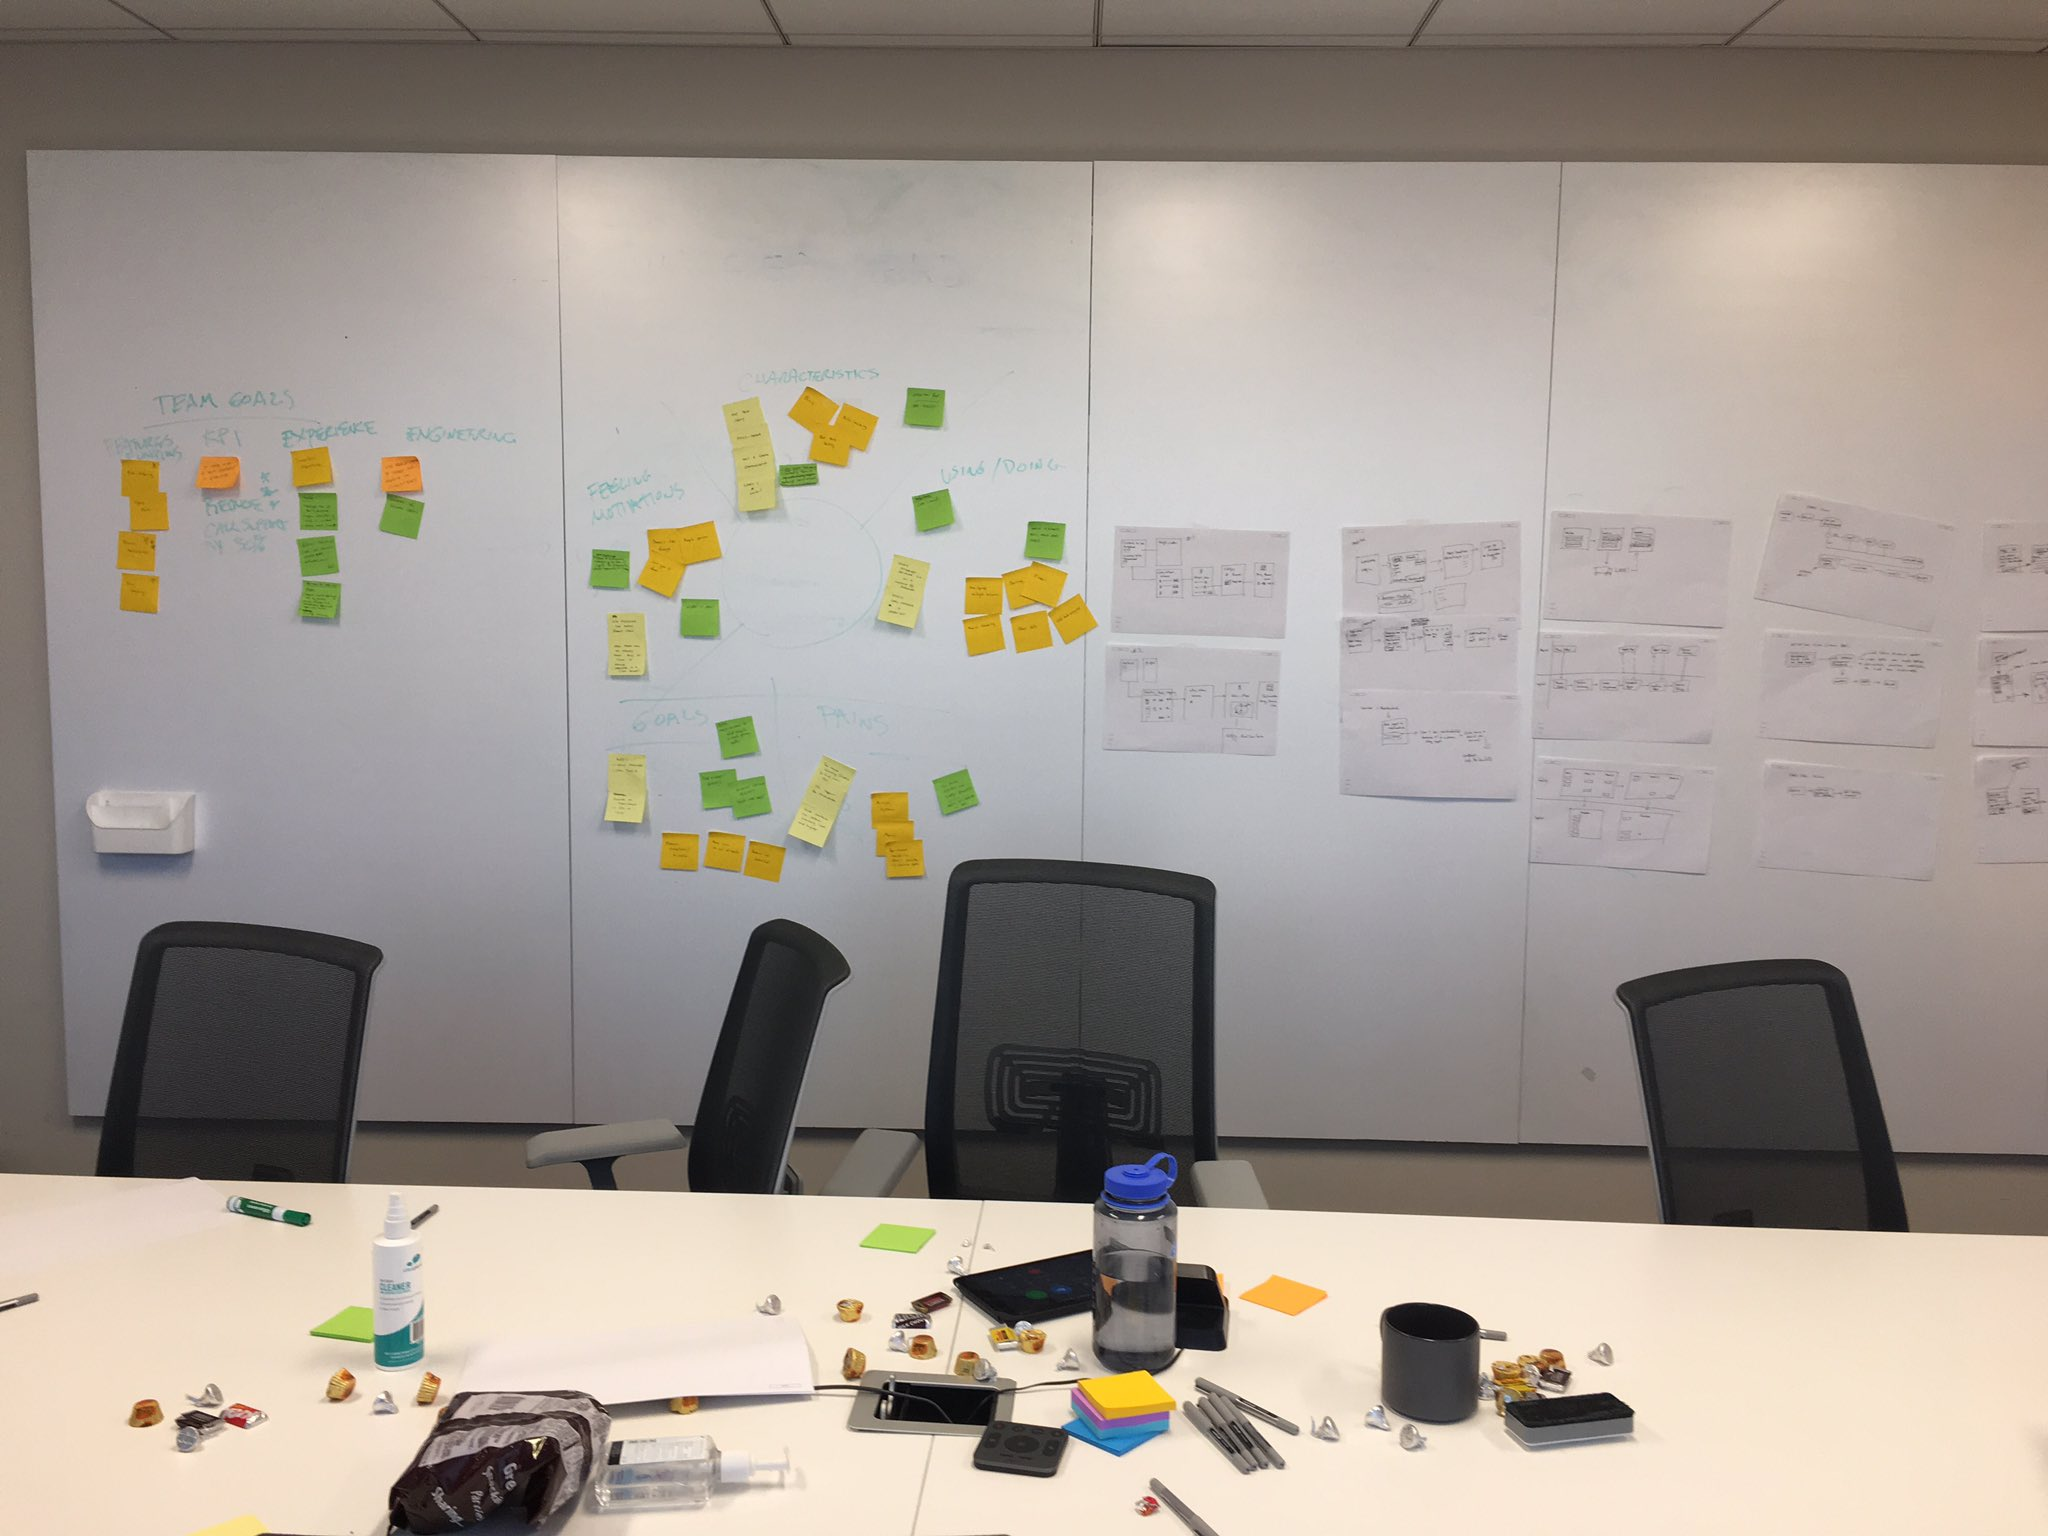 While interviewing for a leadership role, I was given wireframe (aka visual design) homework. I instead turned the exercise into a workshop & asked the interviewers to participate. My goals were to demonstrate collaborative UCD, generate ideas, & observe their reaction. #UX https://t.co/ScRdcEHADb